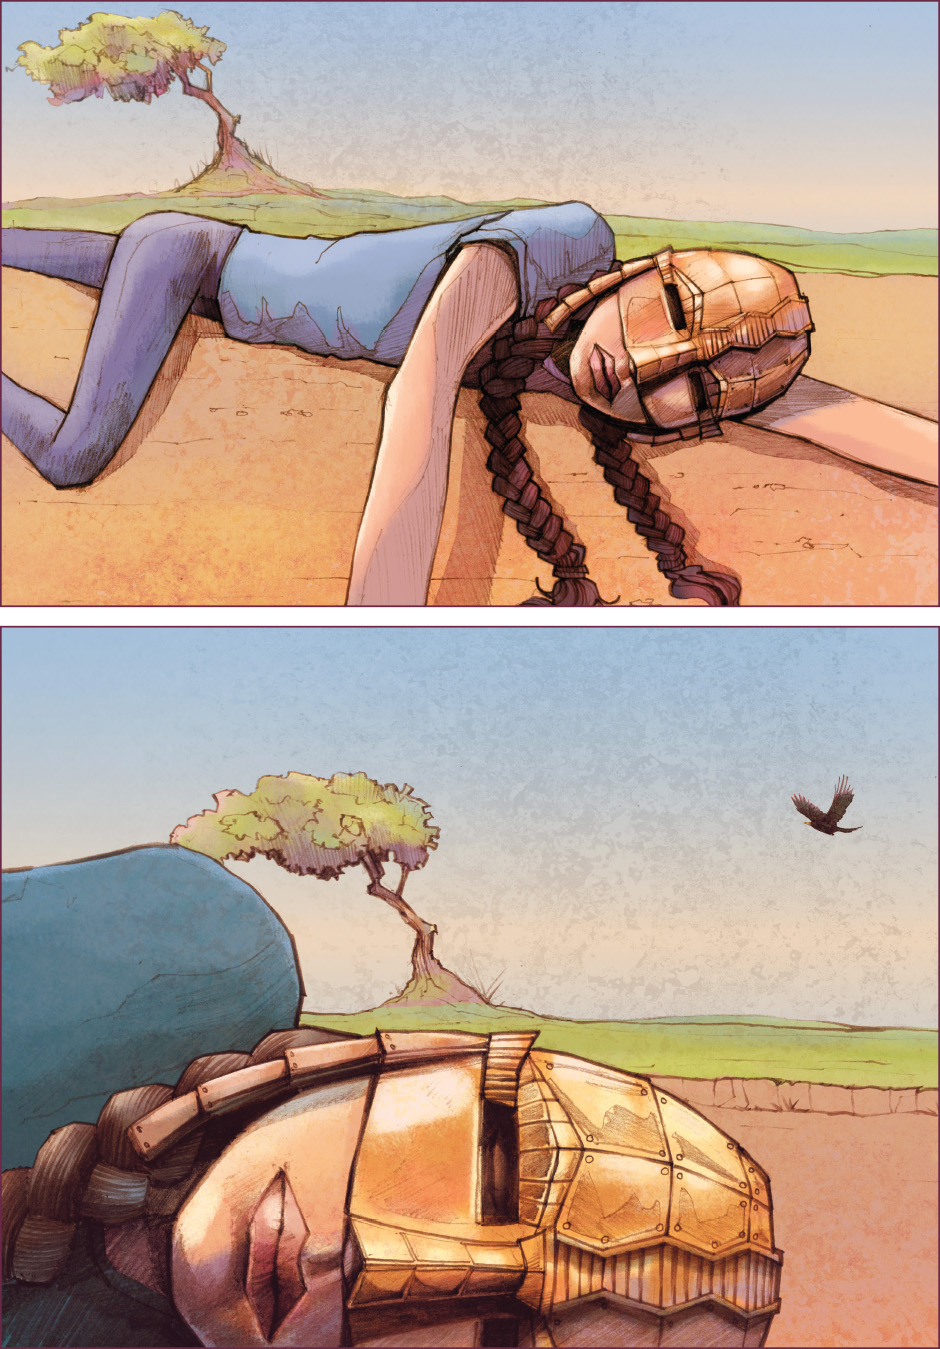 Lian Webcomic, The Tree of Life, chapter 2. Lian lying on the ground